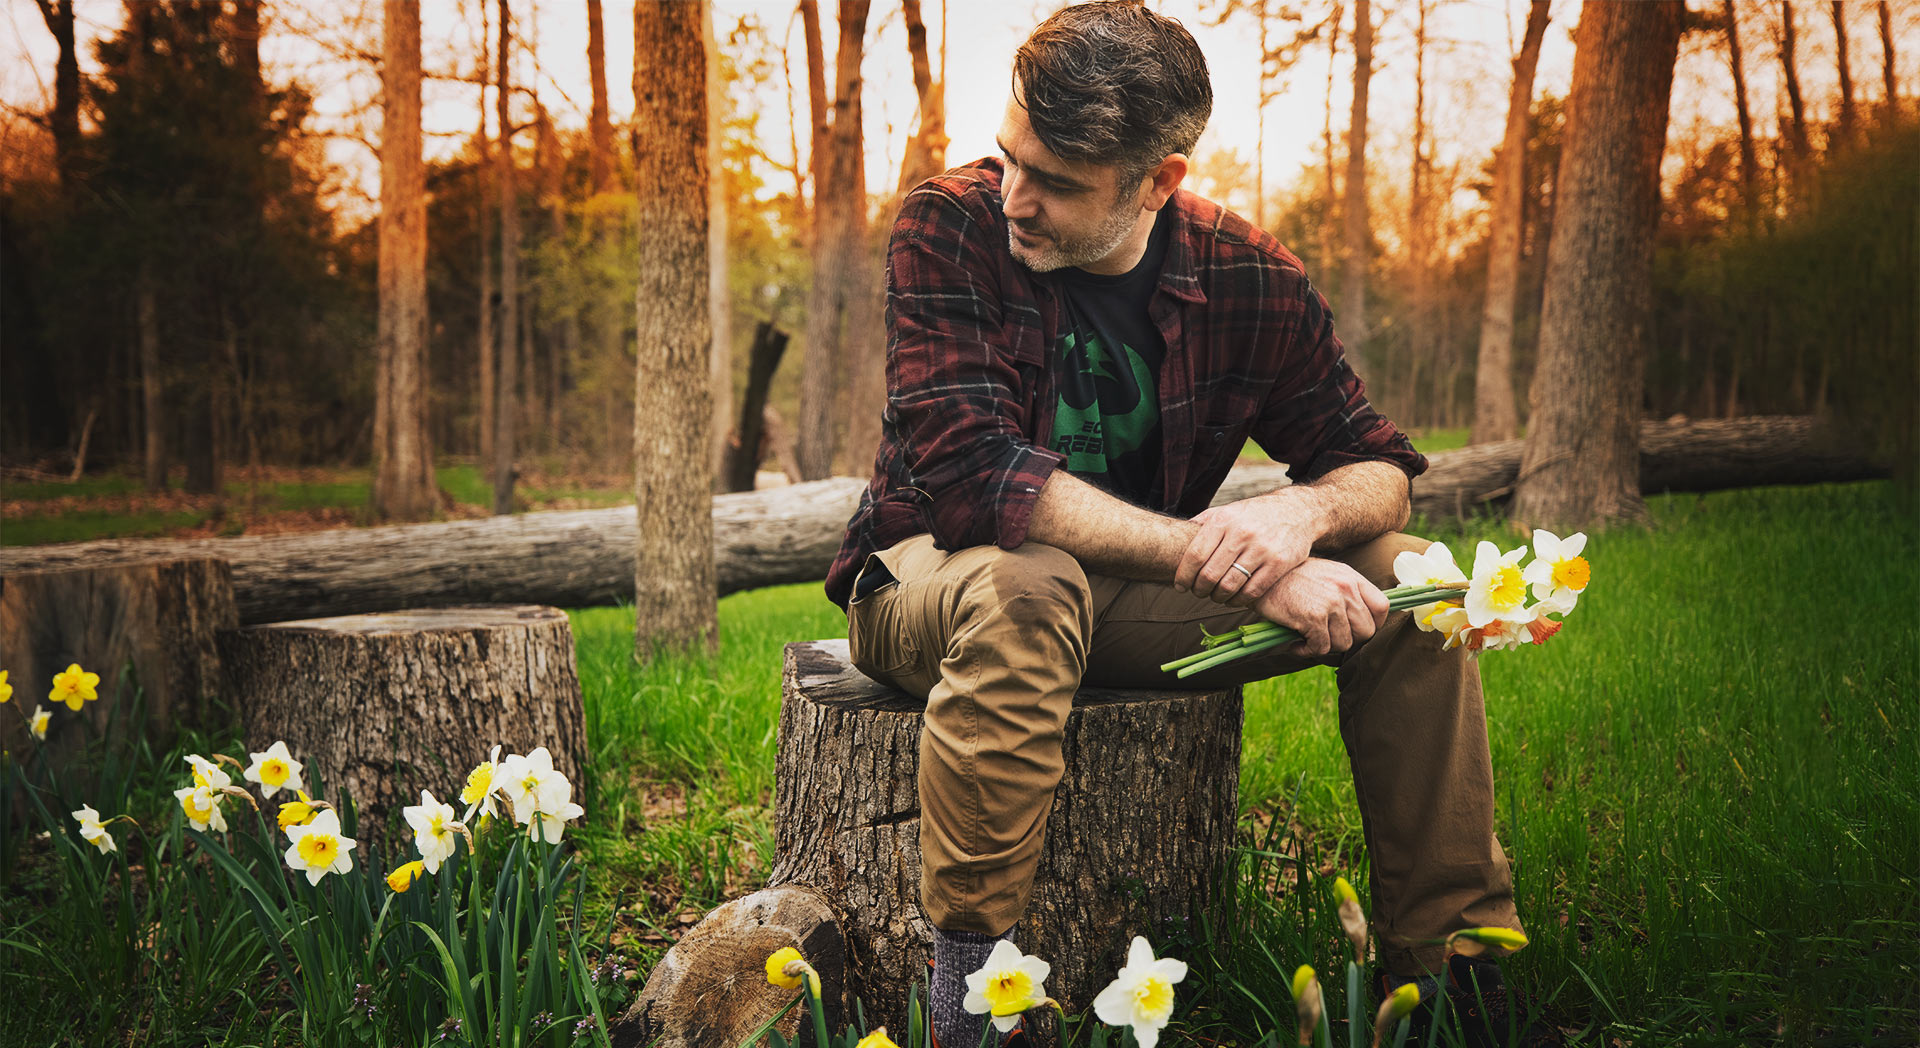 Rob Nelson with Daffodils